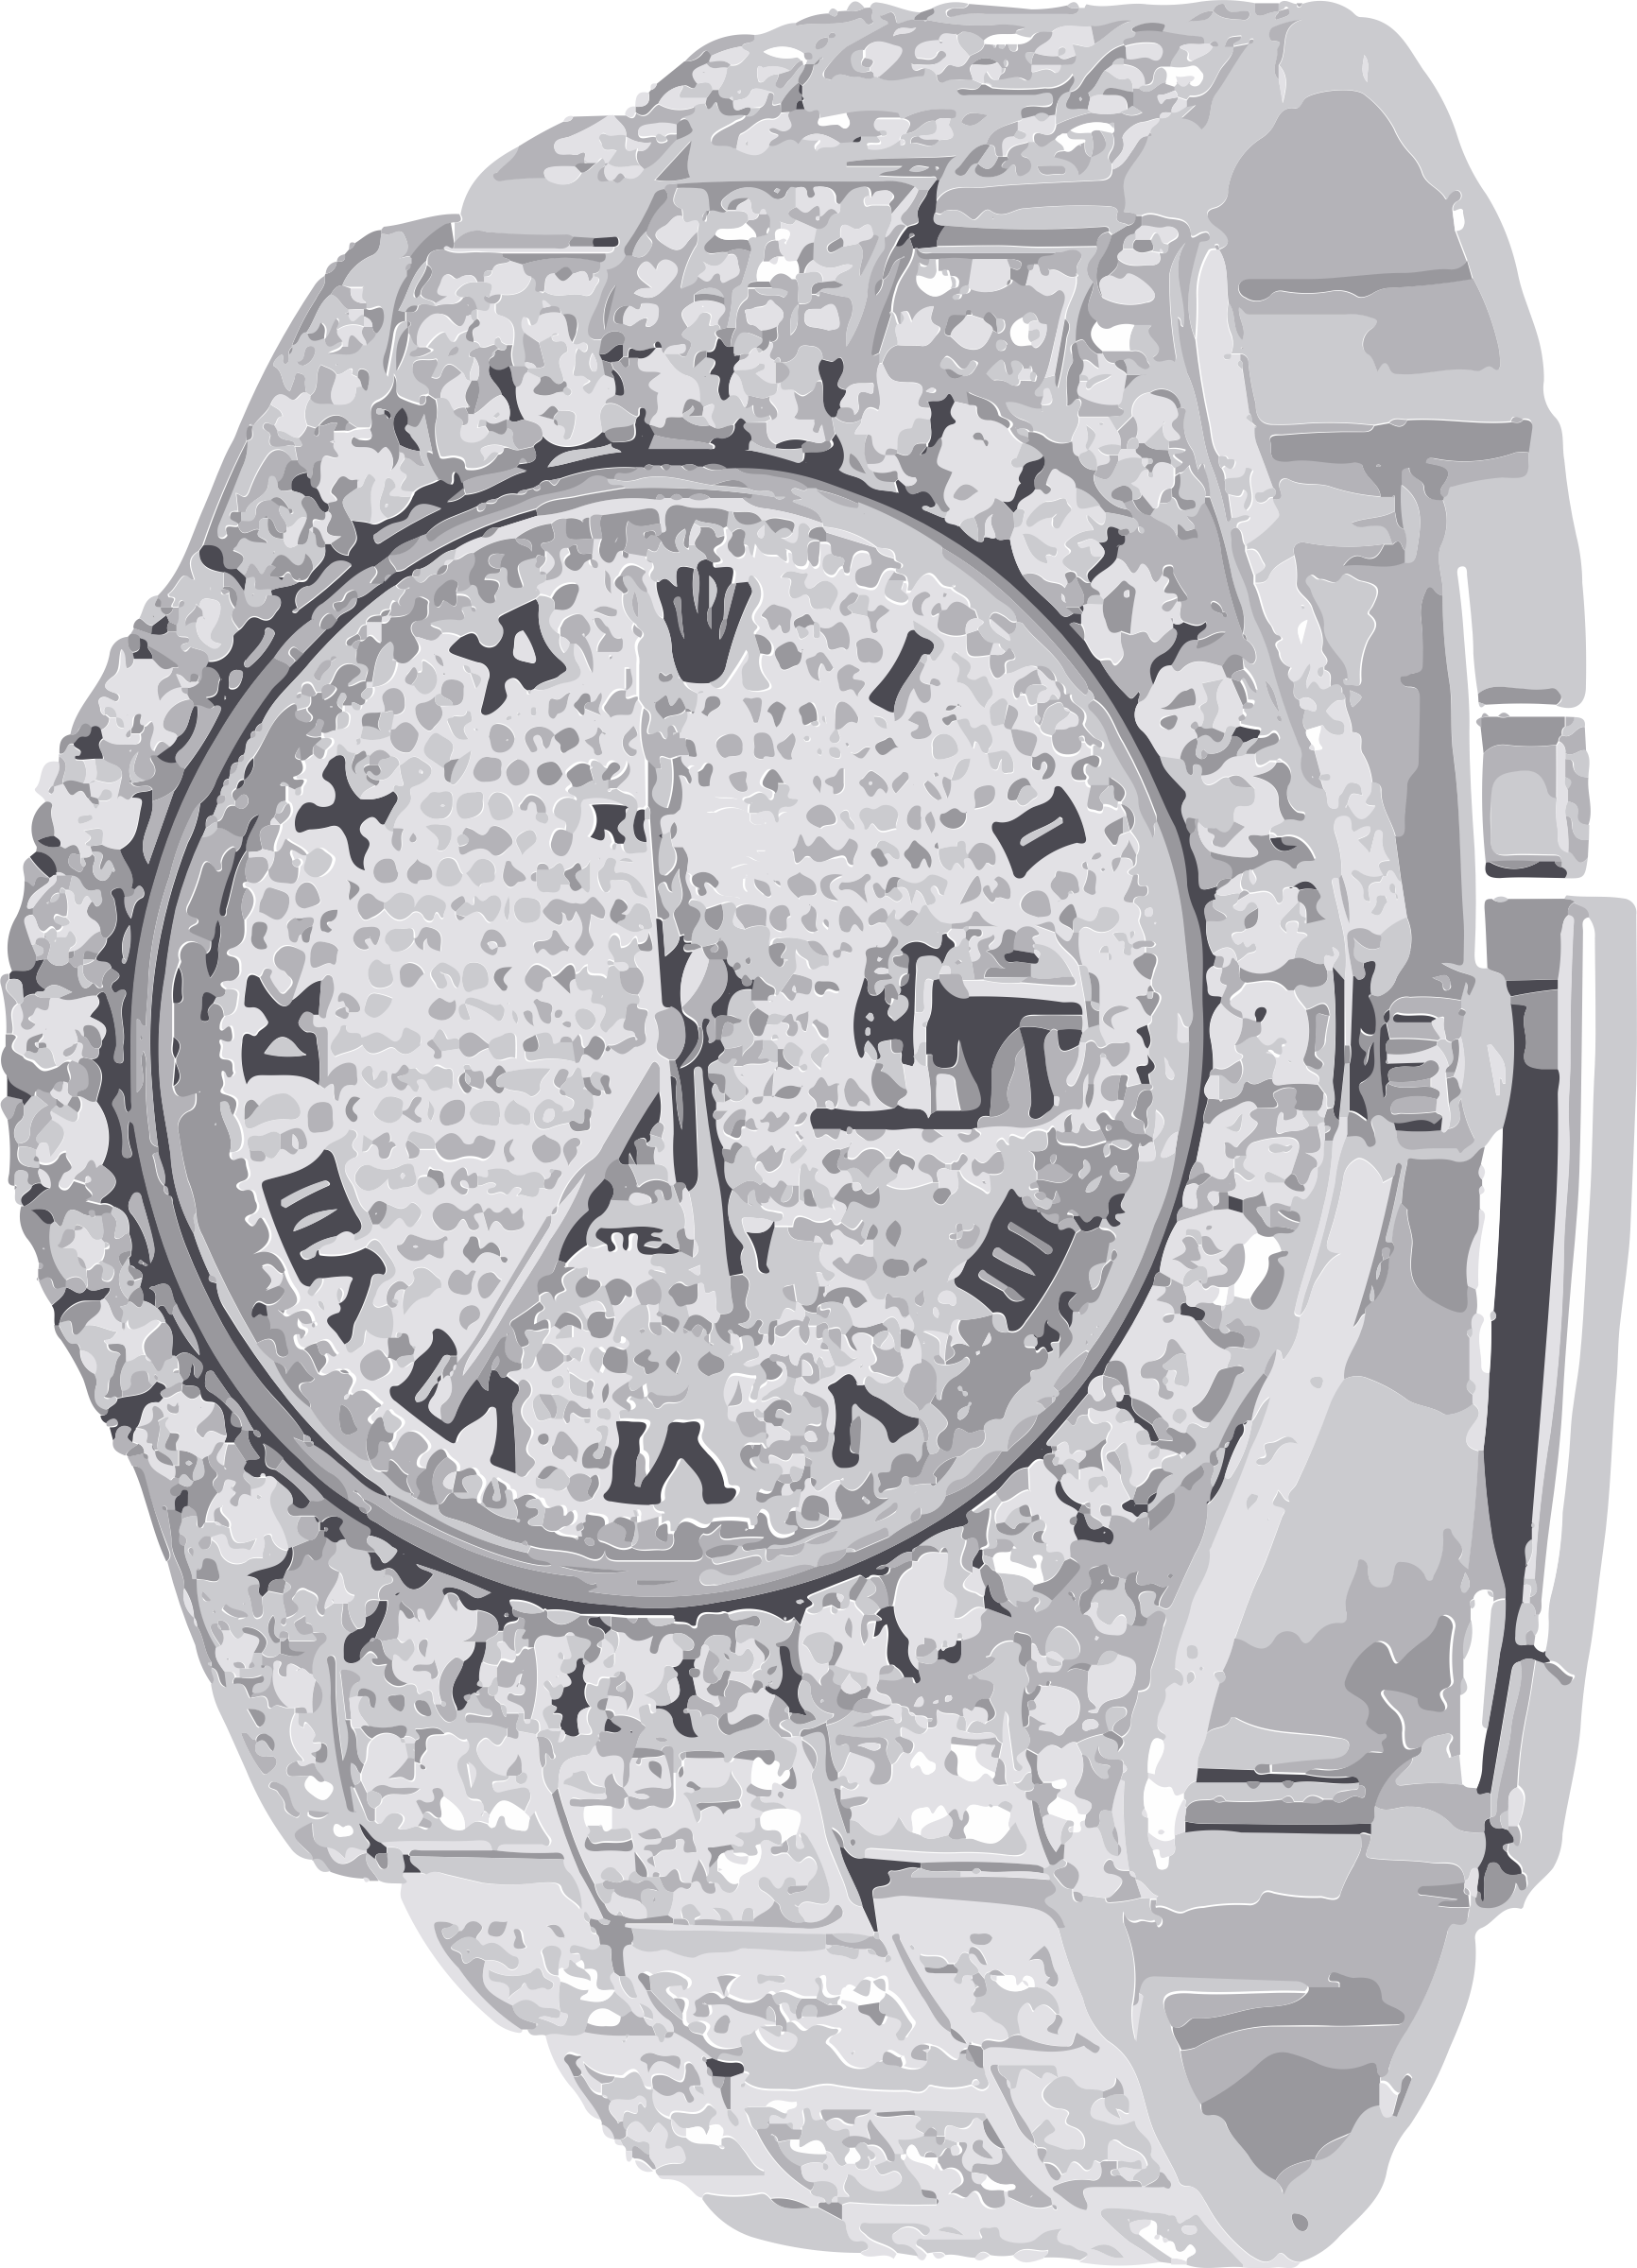 Diamond Watch Png images collection for free download.